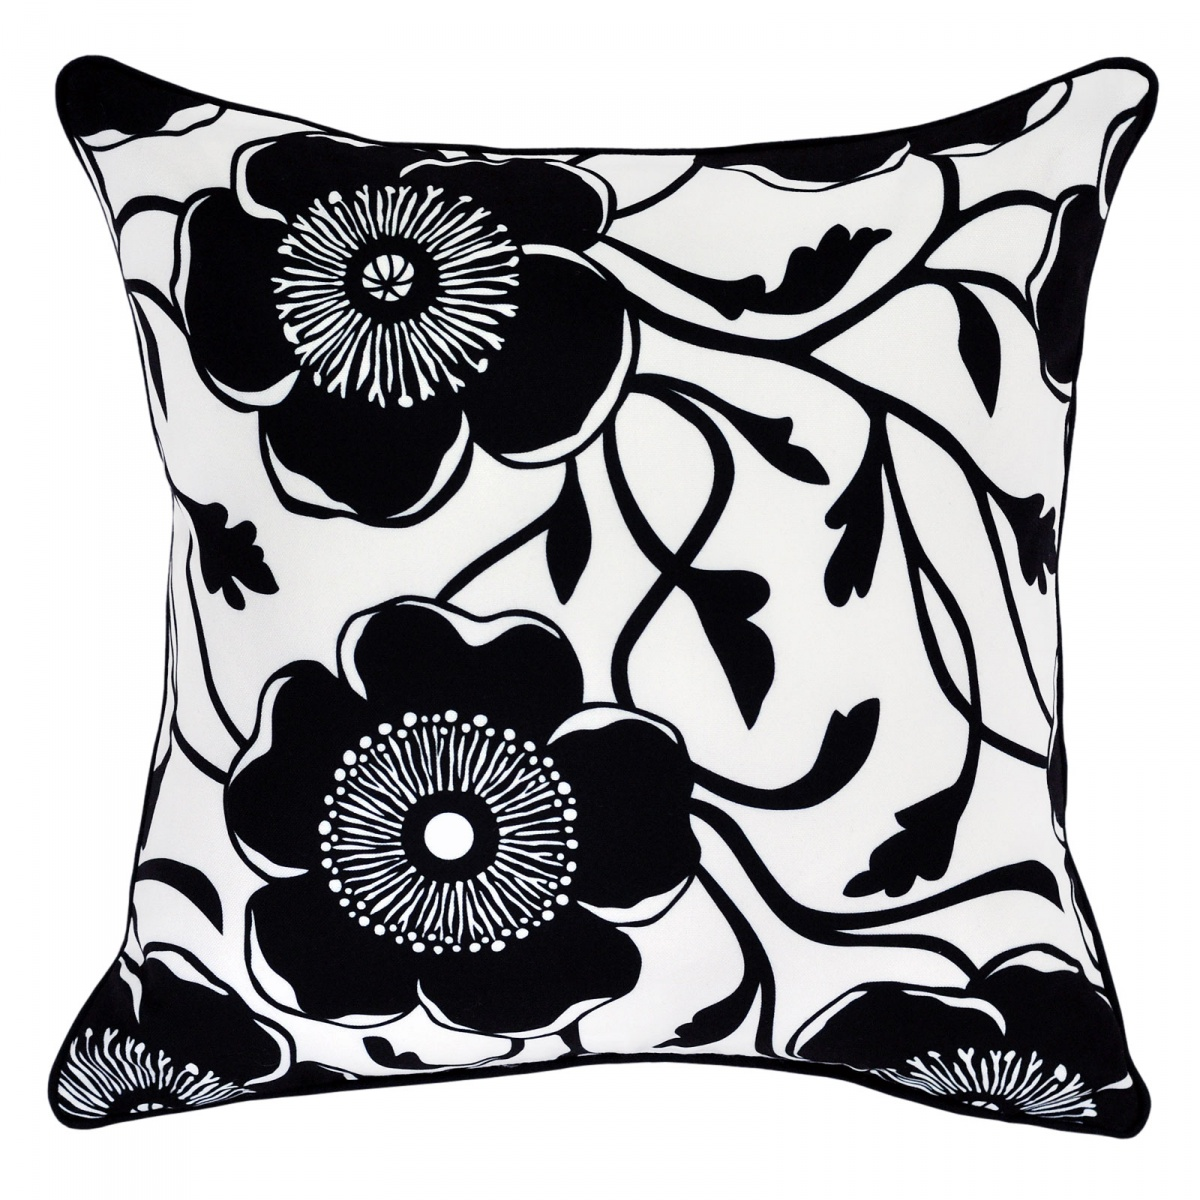 Presley Platinum Cushion - 45x45cm